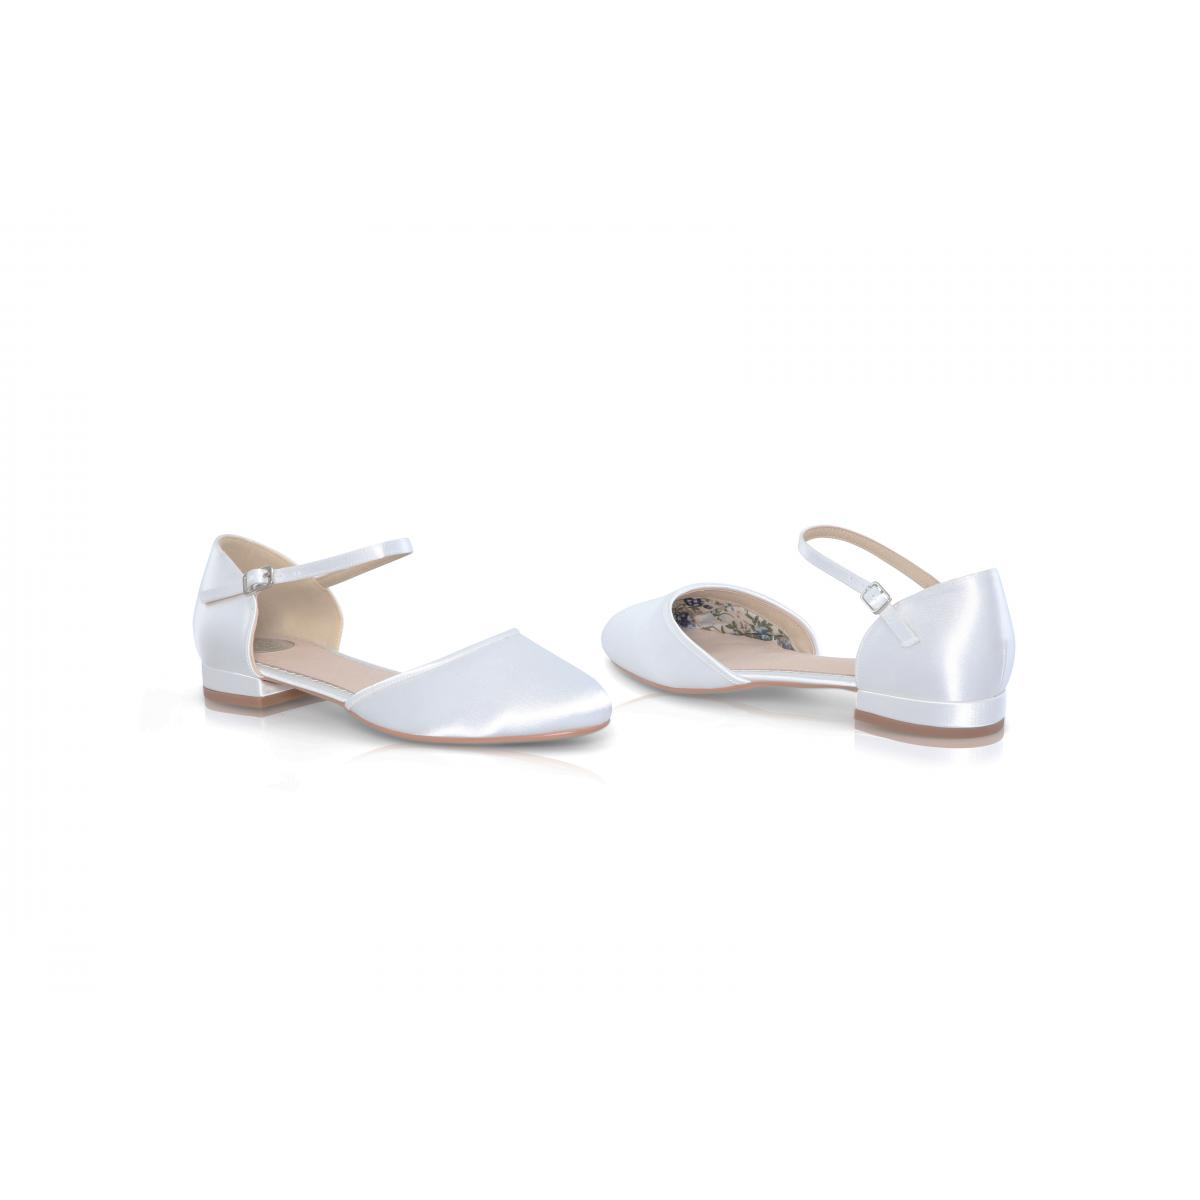 Perfect Bridal Verity Shoes - Ivory Satin 4